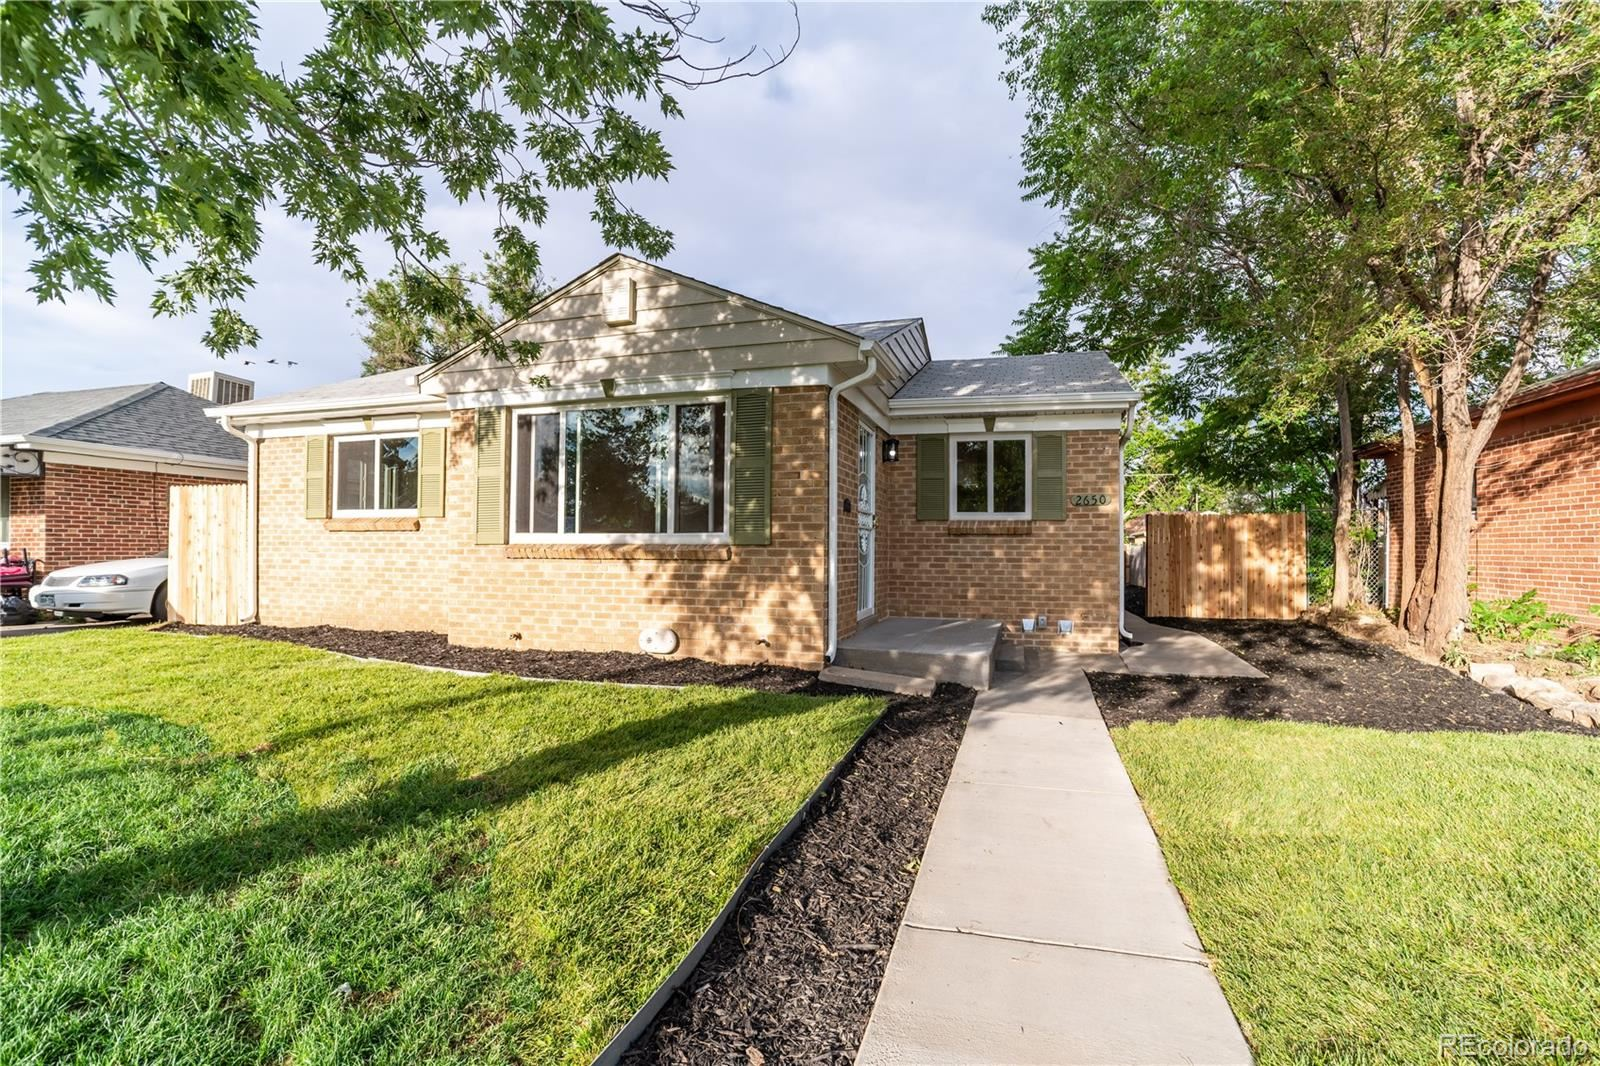 2650 Pontiac Street, Denver, CO 80207 - #: 8331947